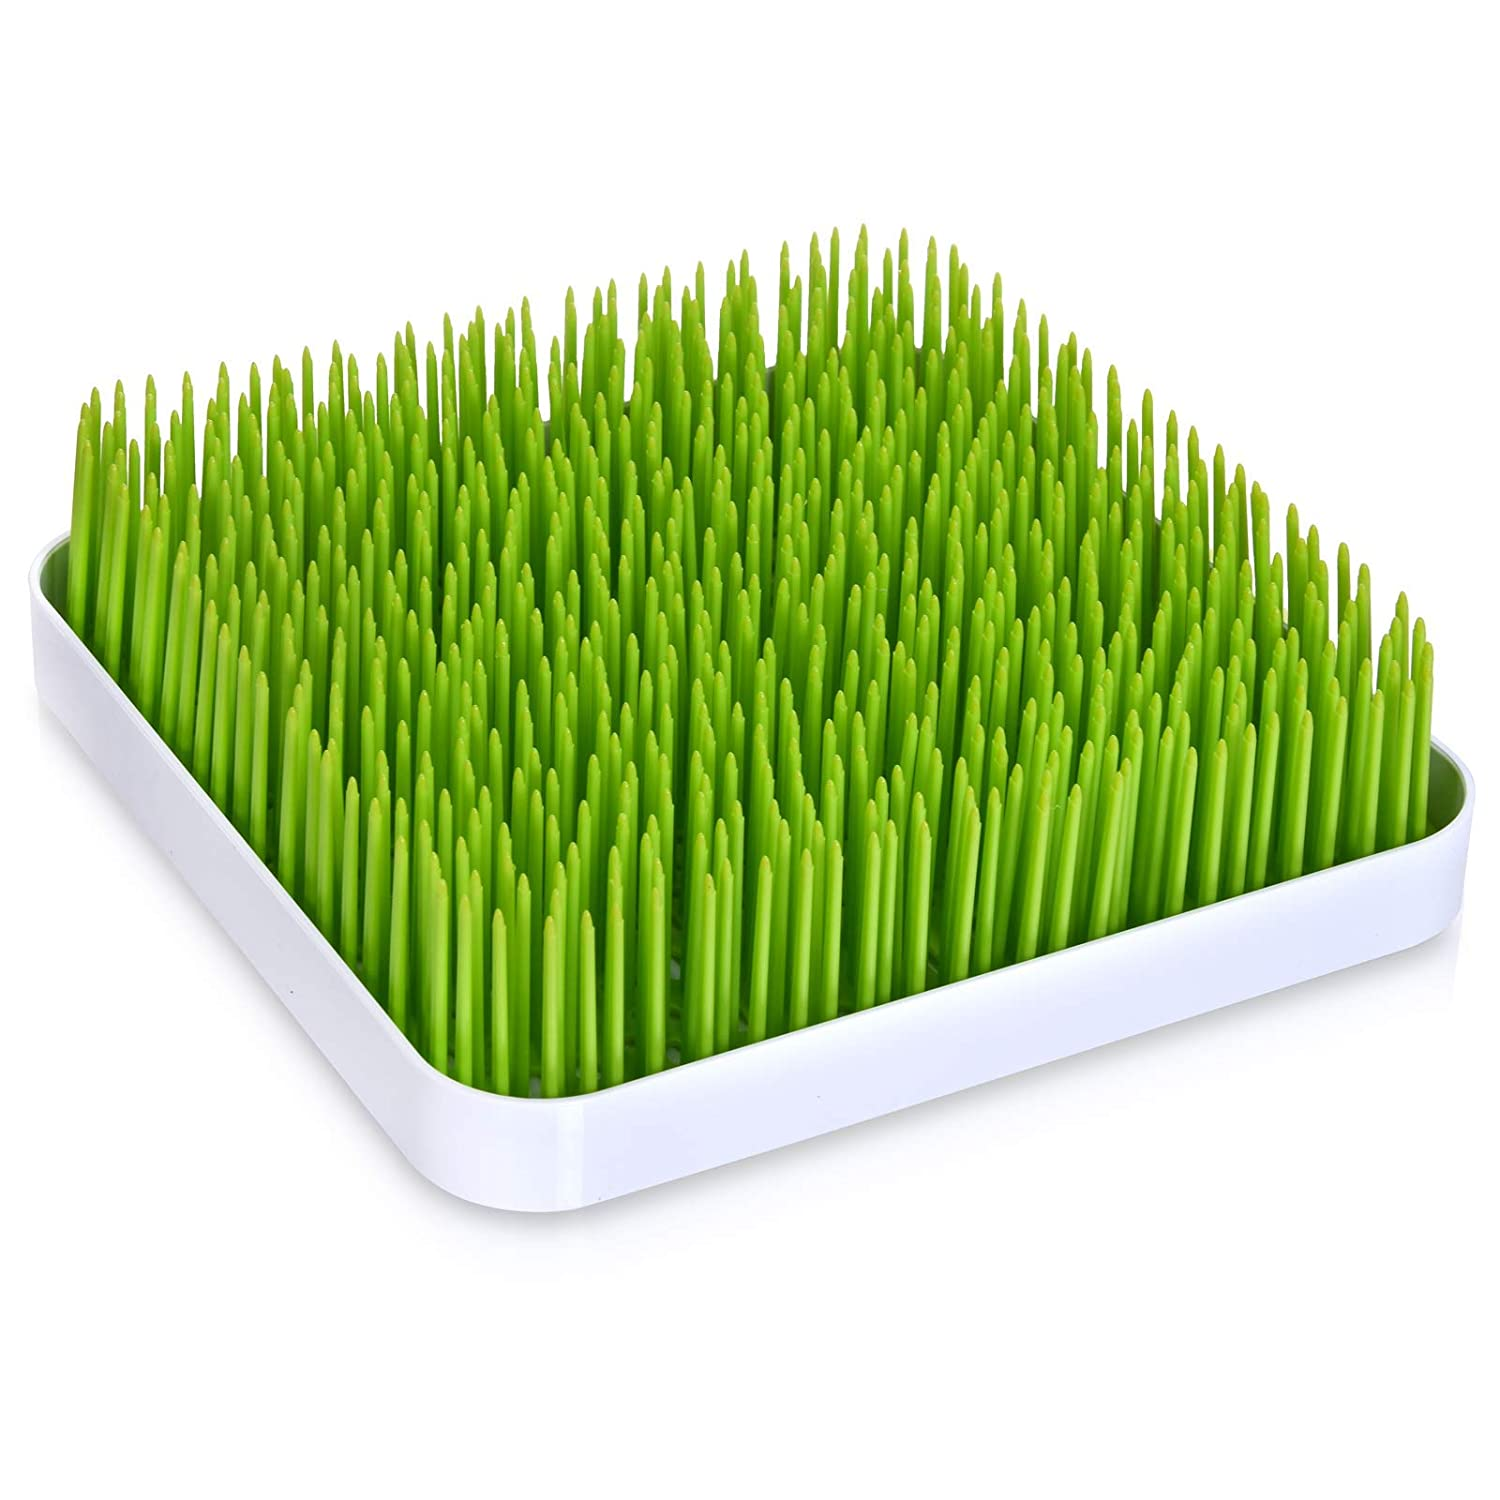 Baby Bottle Drying Rack for Kitchen Counter Top - Quality and Sleek Grass Turf Style Design For the Love of Leisure